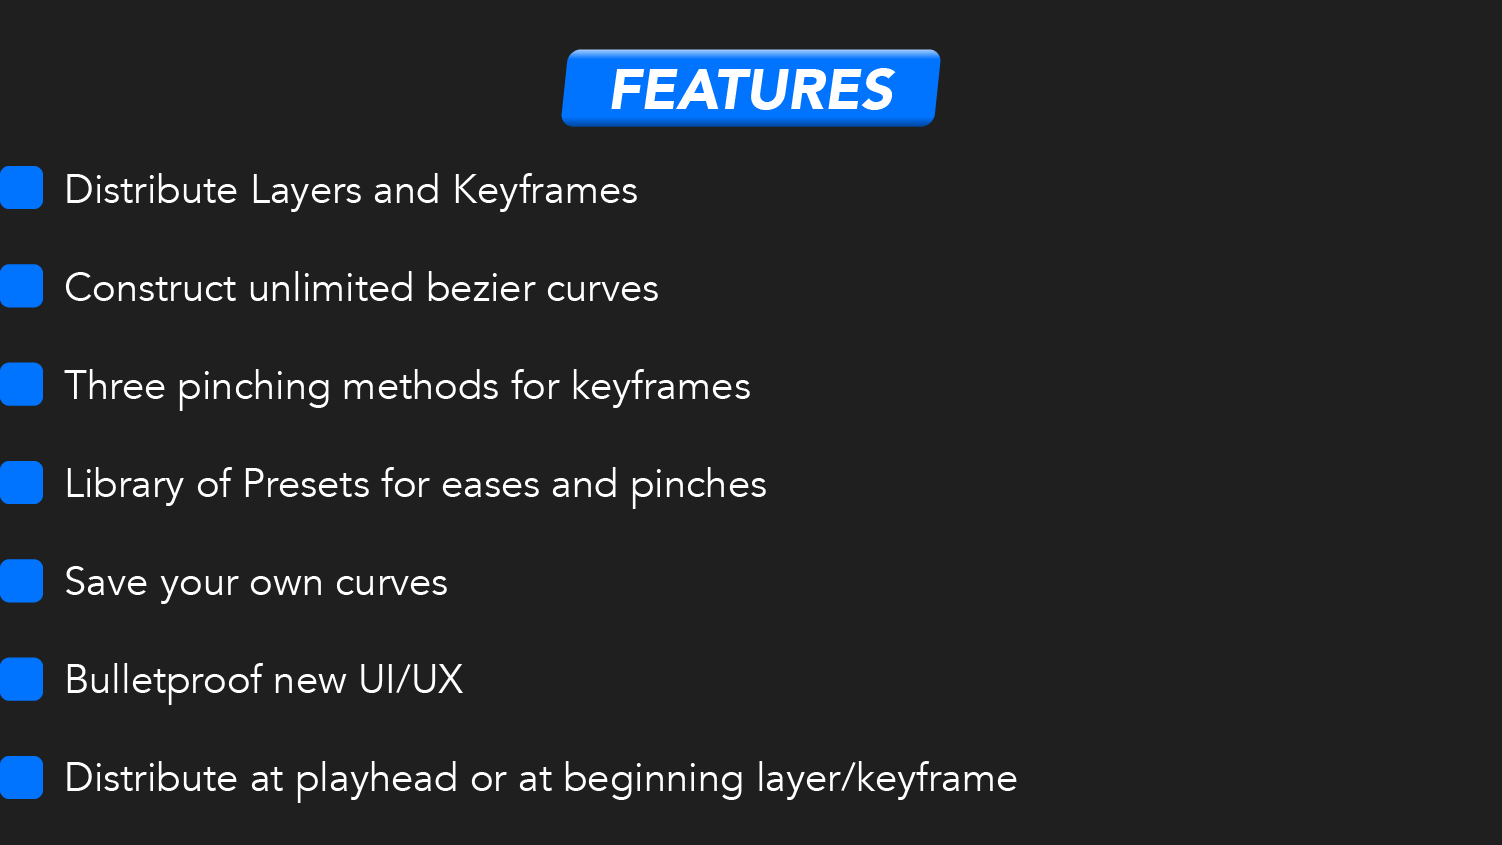 Features: Distribute layers and keyframes, construct unlimited bezier curves, three pinching methods for keyframes, library of presets for eases and pinches, save your own curves, bulletproof new UI/UX, distribute at playhead or at beginning of layer/keyframe.